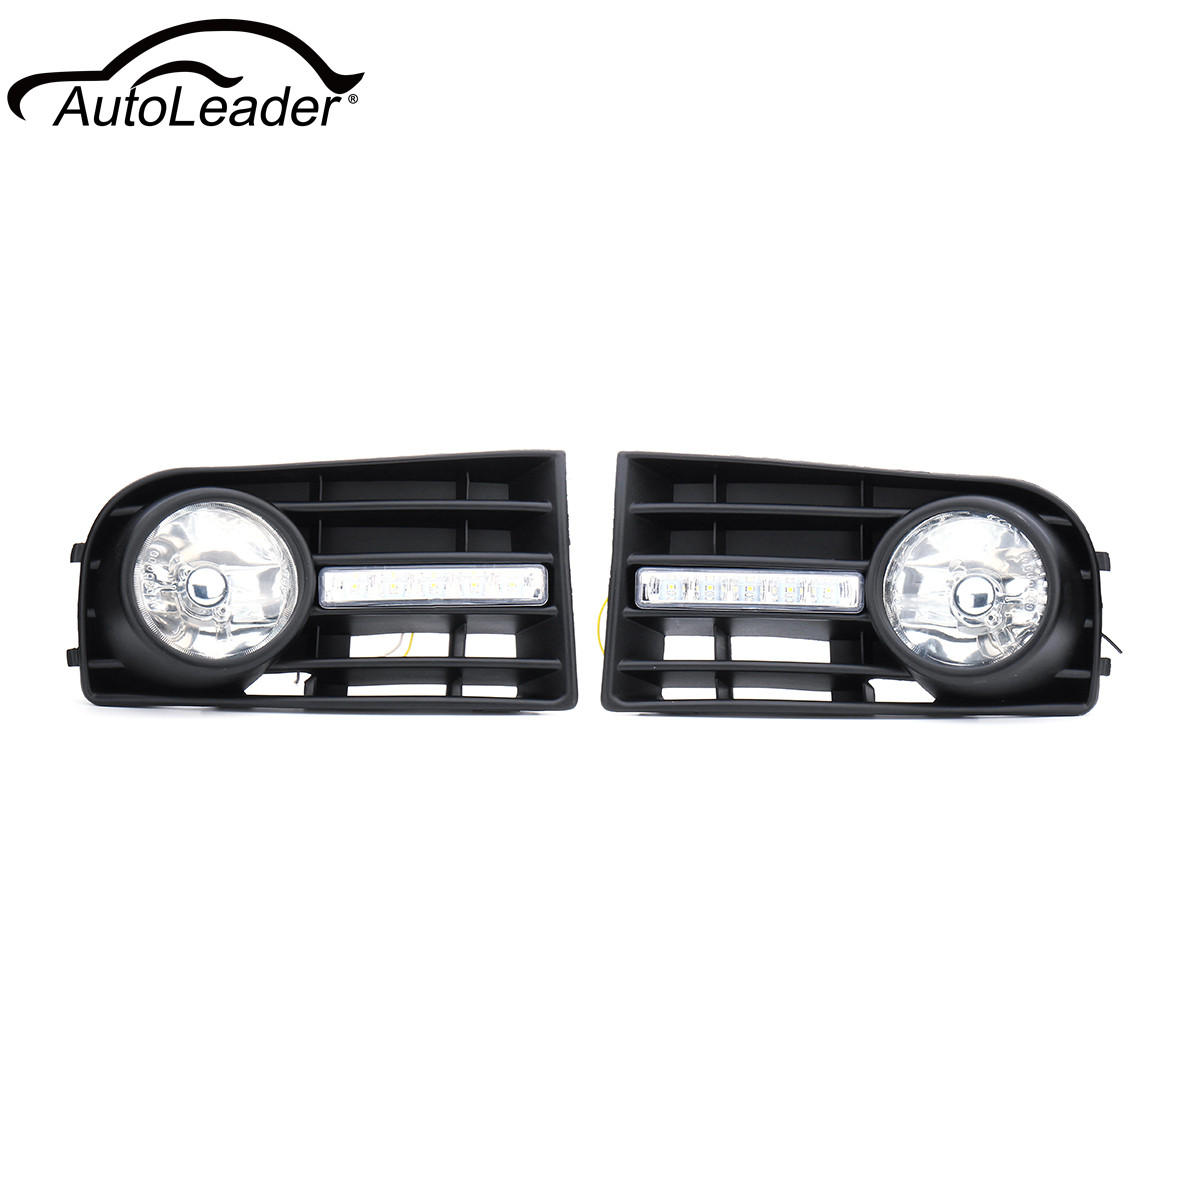 Pair Car Front DRL Fog Light Lamps Grilles + Wiring Harness Switch Fog Lamp For VW Golf 5 2006-2009 Yellow Light car fog lights lamp for mitsubishi triton 2 door 2009 on clear lens pair set wiring kit fog light set free shipping